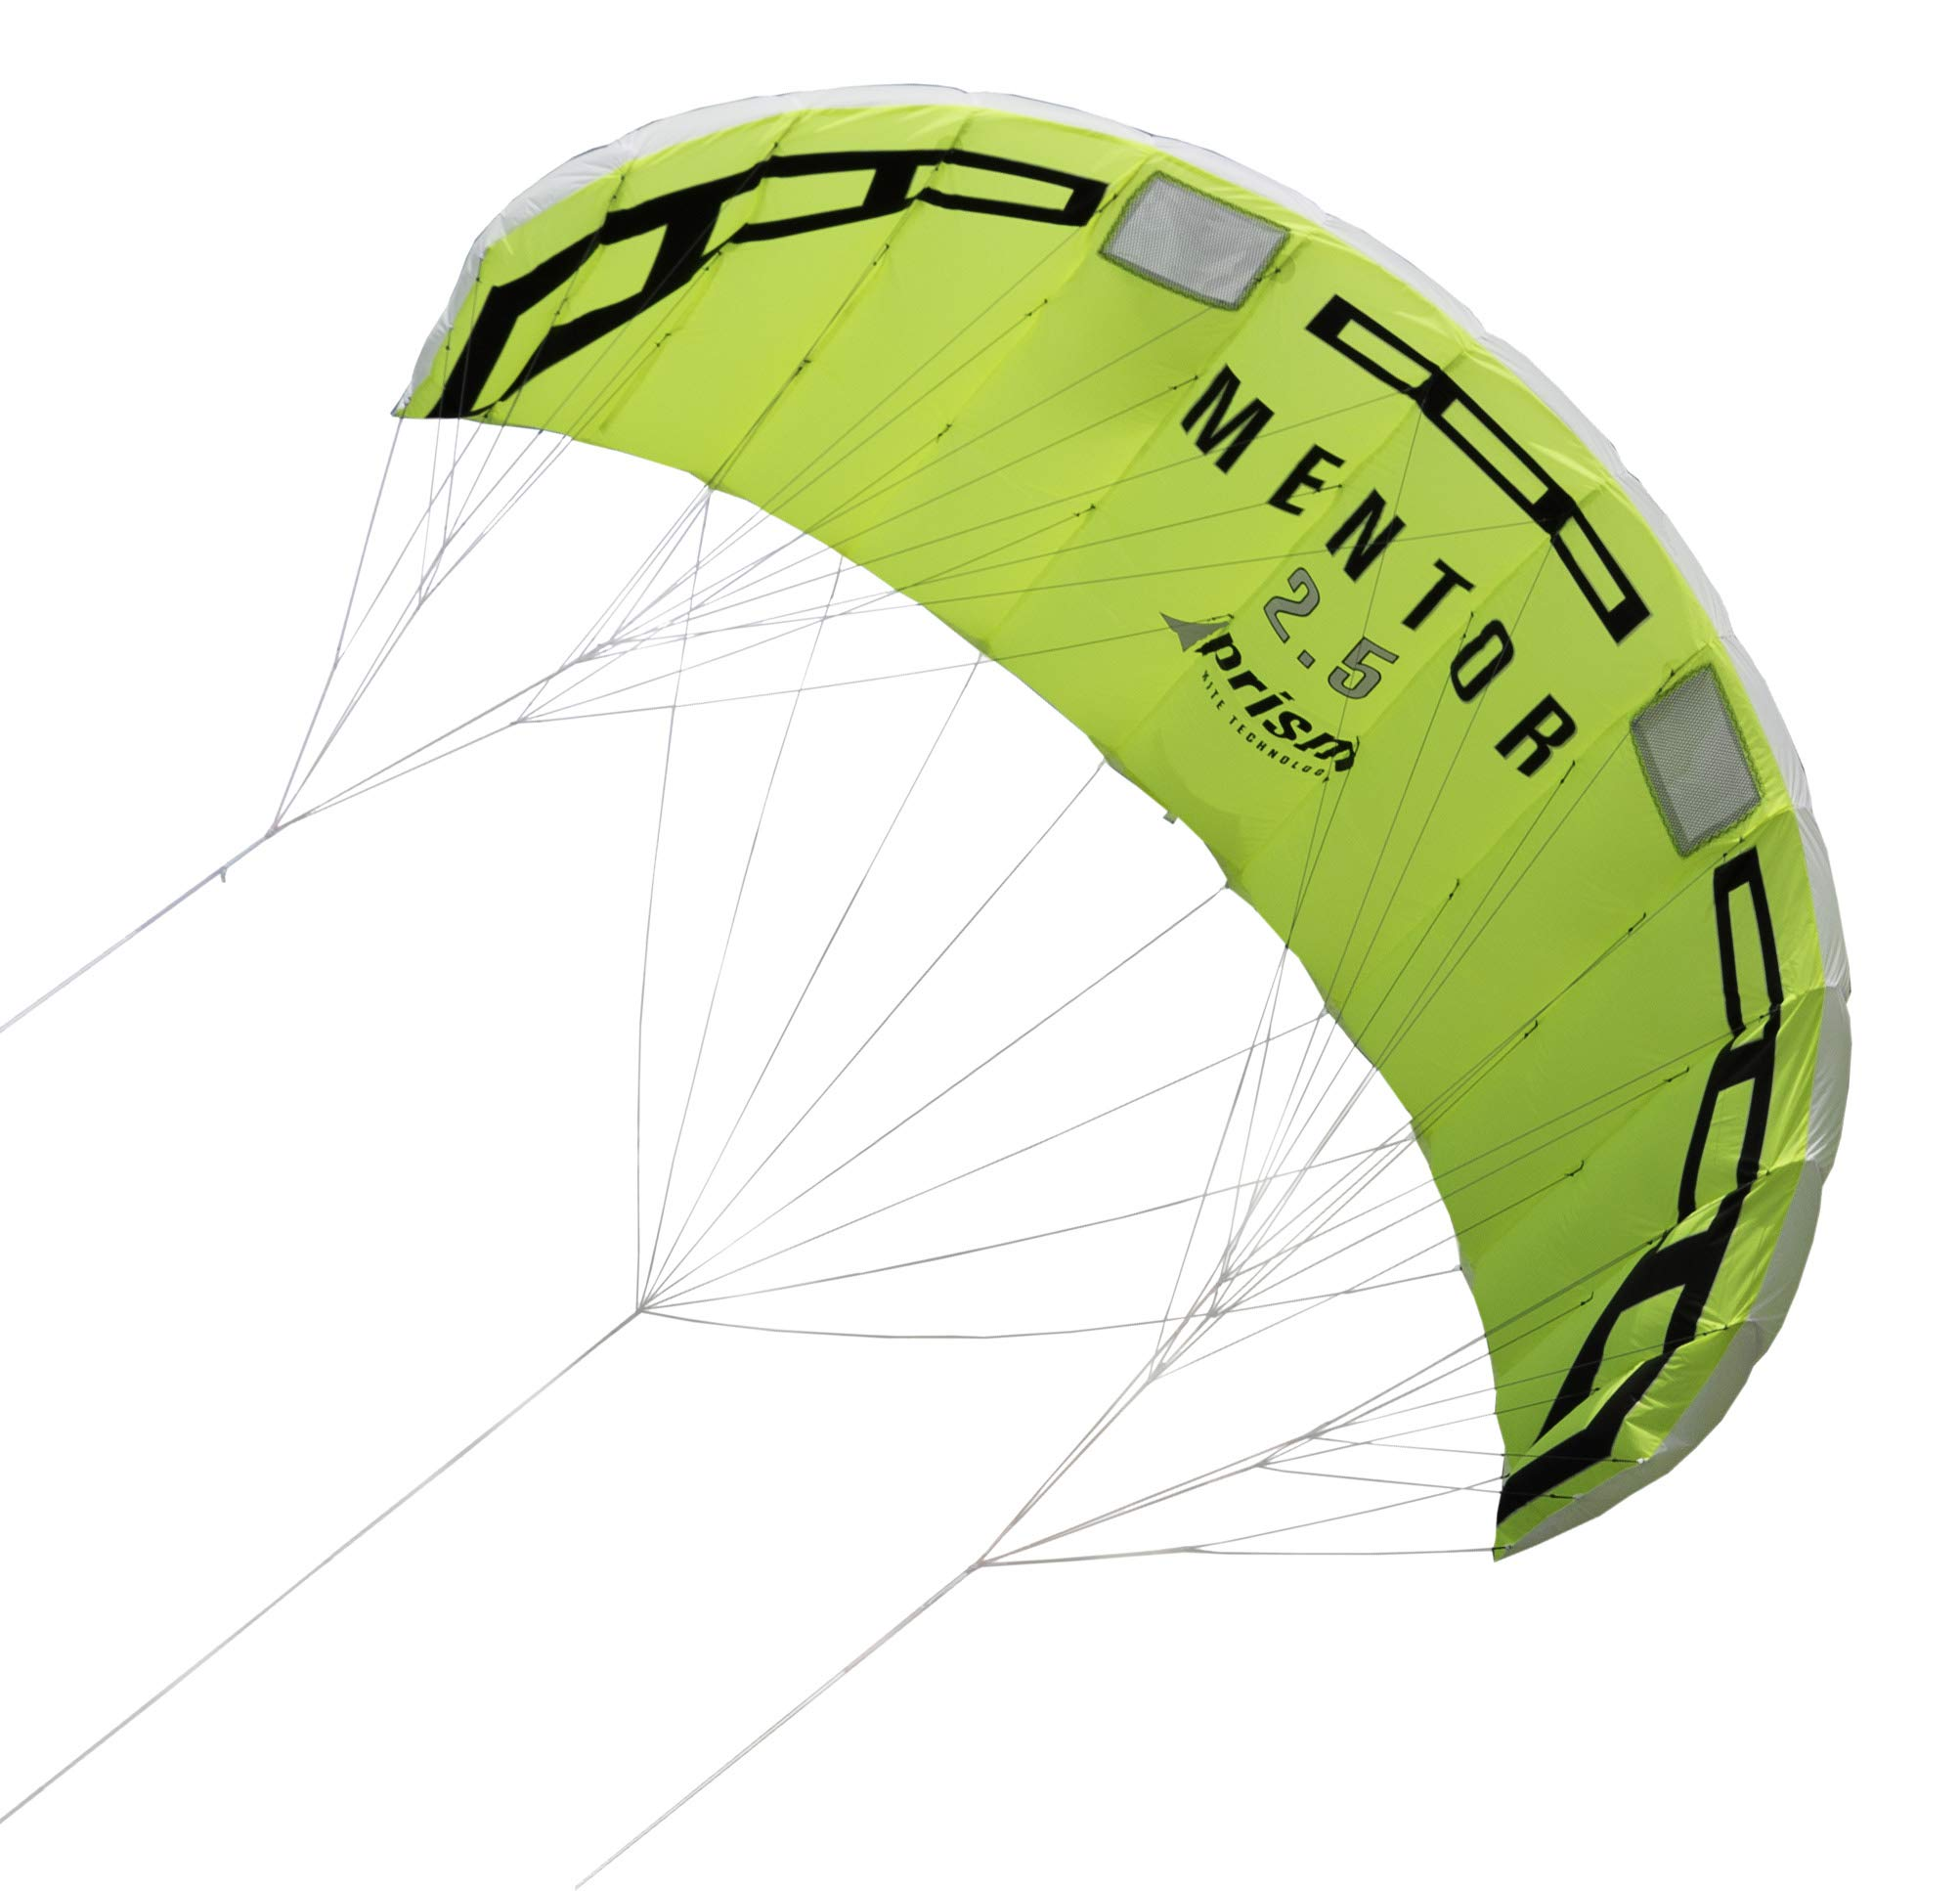 Prism Mentor 2.5m Water-relaunchable Three-line Power Kite Ready to Fly with Control bar, Ground Stake and Quick Release Safety Leash by Prism Kite Technology